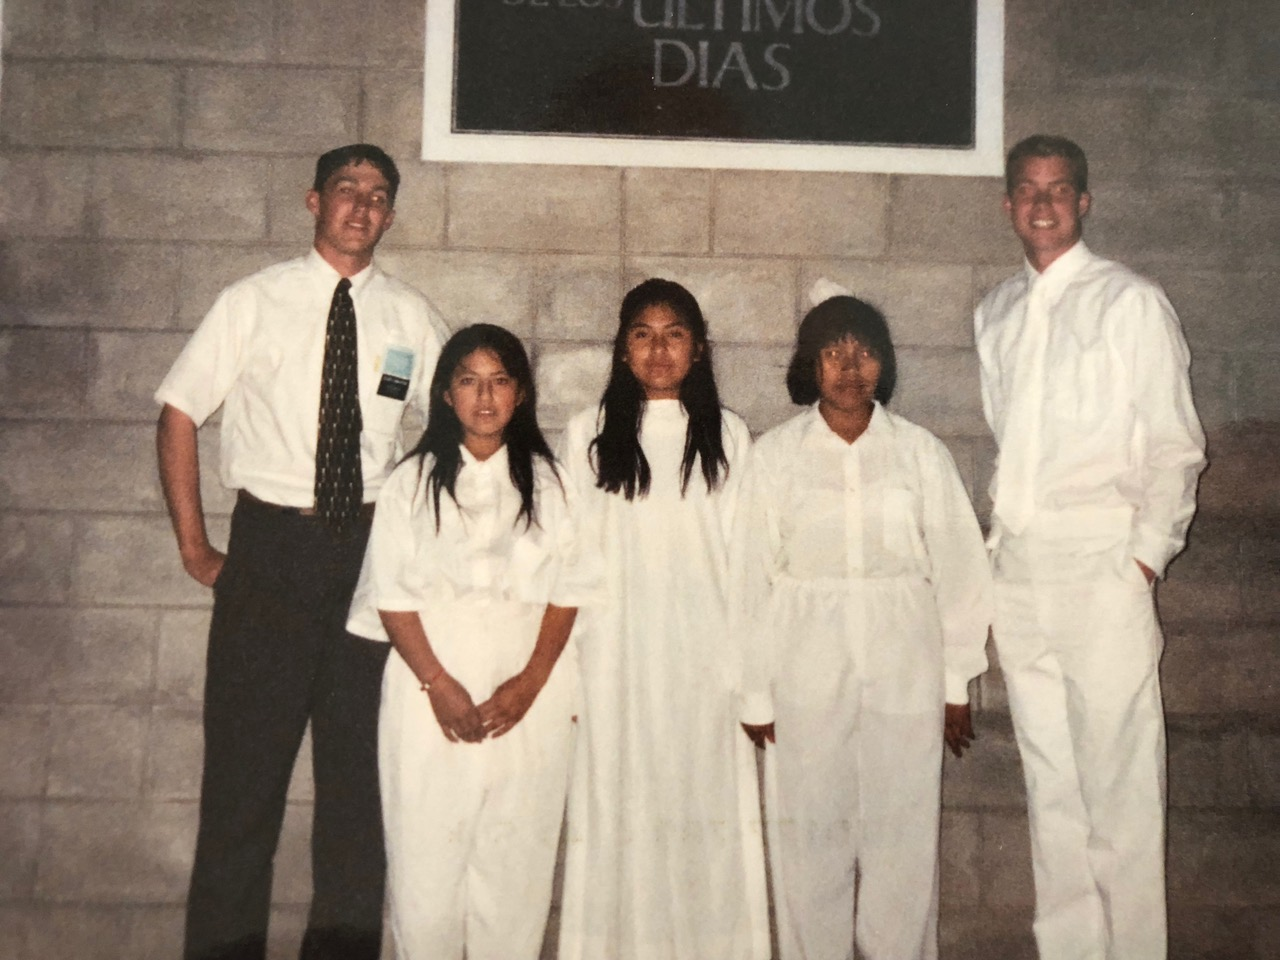 Davis Smith, right, and his companion Elder Kevin Lancaster, left, at a baptism 20 years ago. Ilsen, second left, and her sister were the first in their family to decide to get baptized. In recent visits to Bolivia, Smith has been able to reunite with Ilsen.